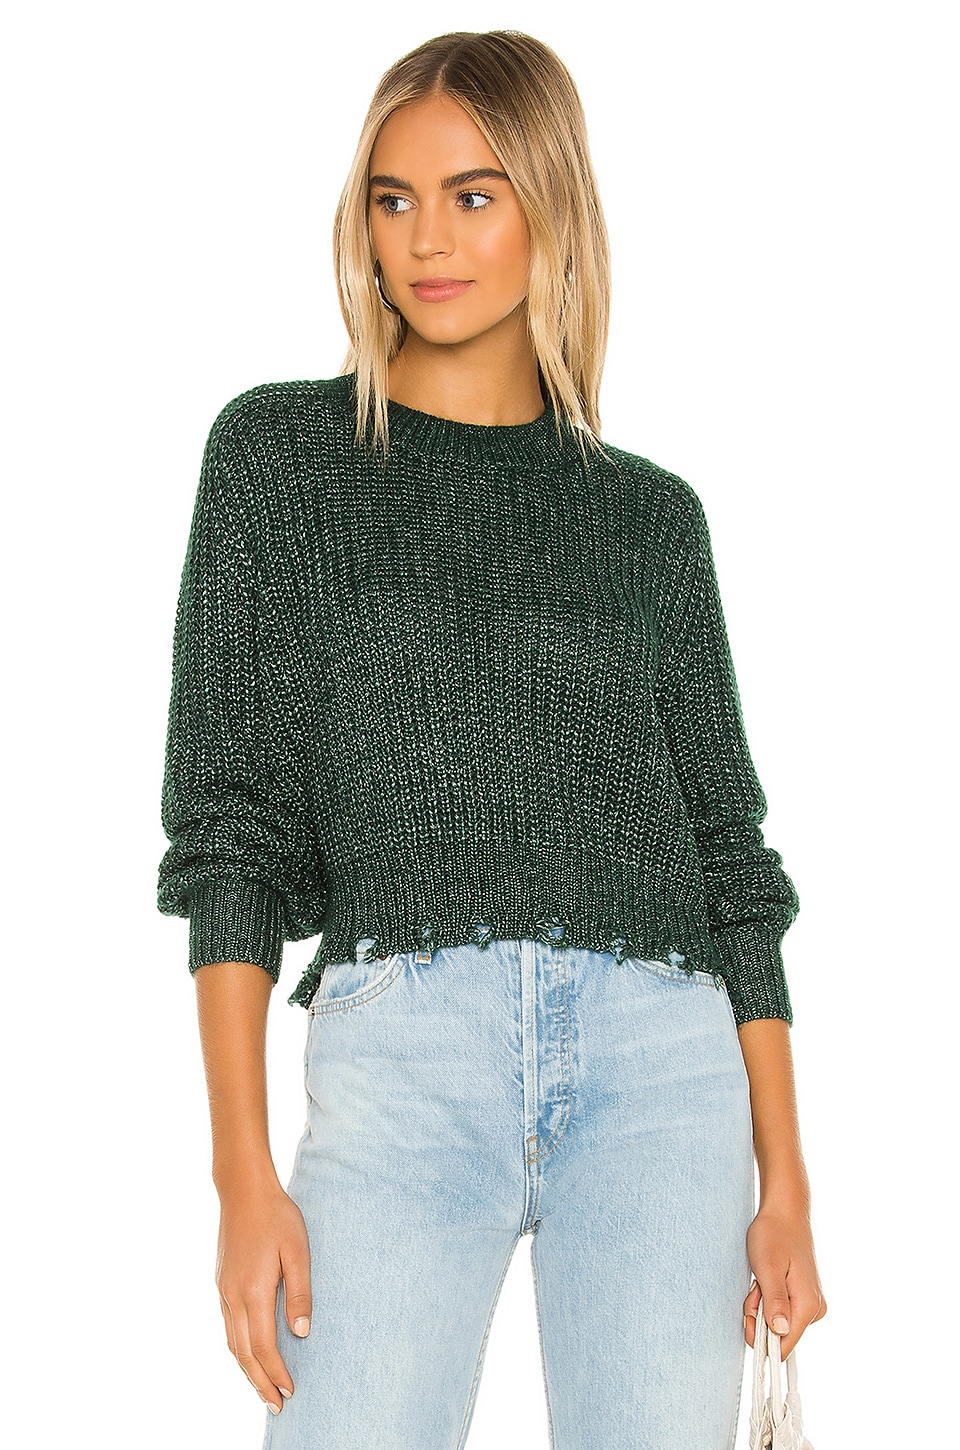 Lovers + Friends Odessa Sweater in Green